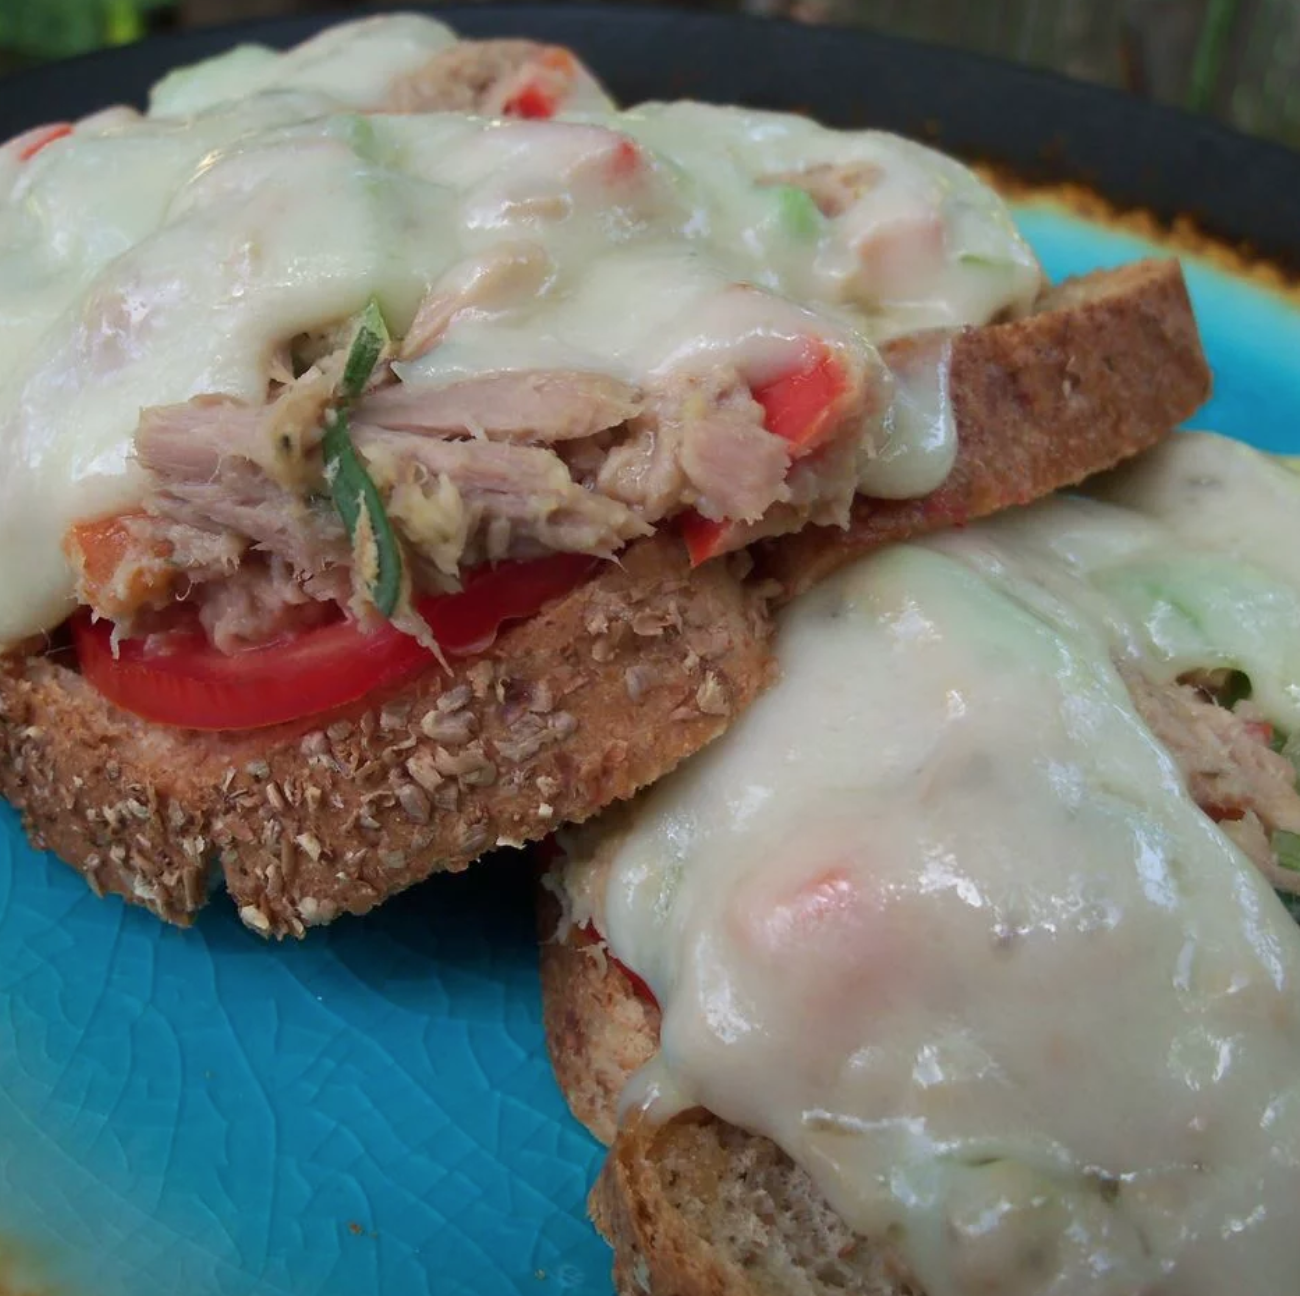 This healthier alternative to the traditional mayo-packed tuna sandwich, seasoned with fresh oregano and fresh rosemary, is topped with red onions and green chile peppers.